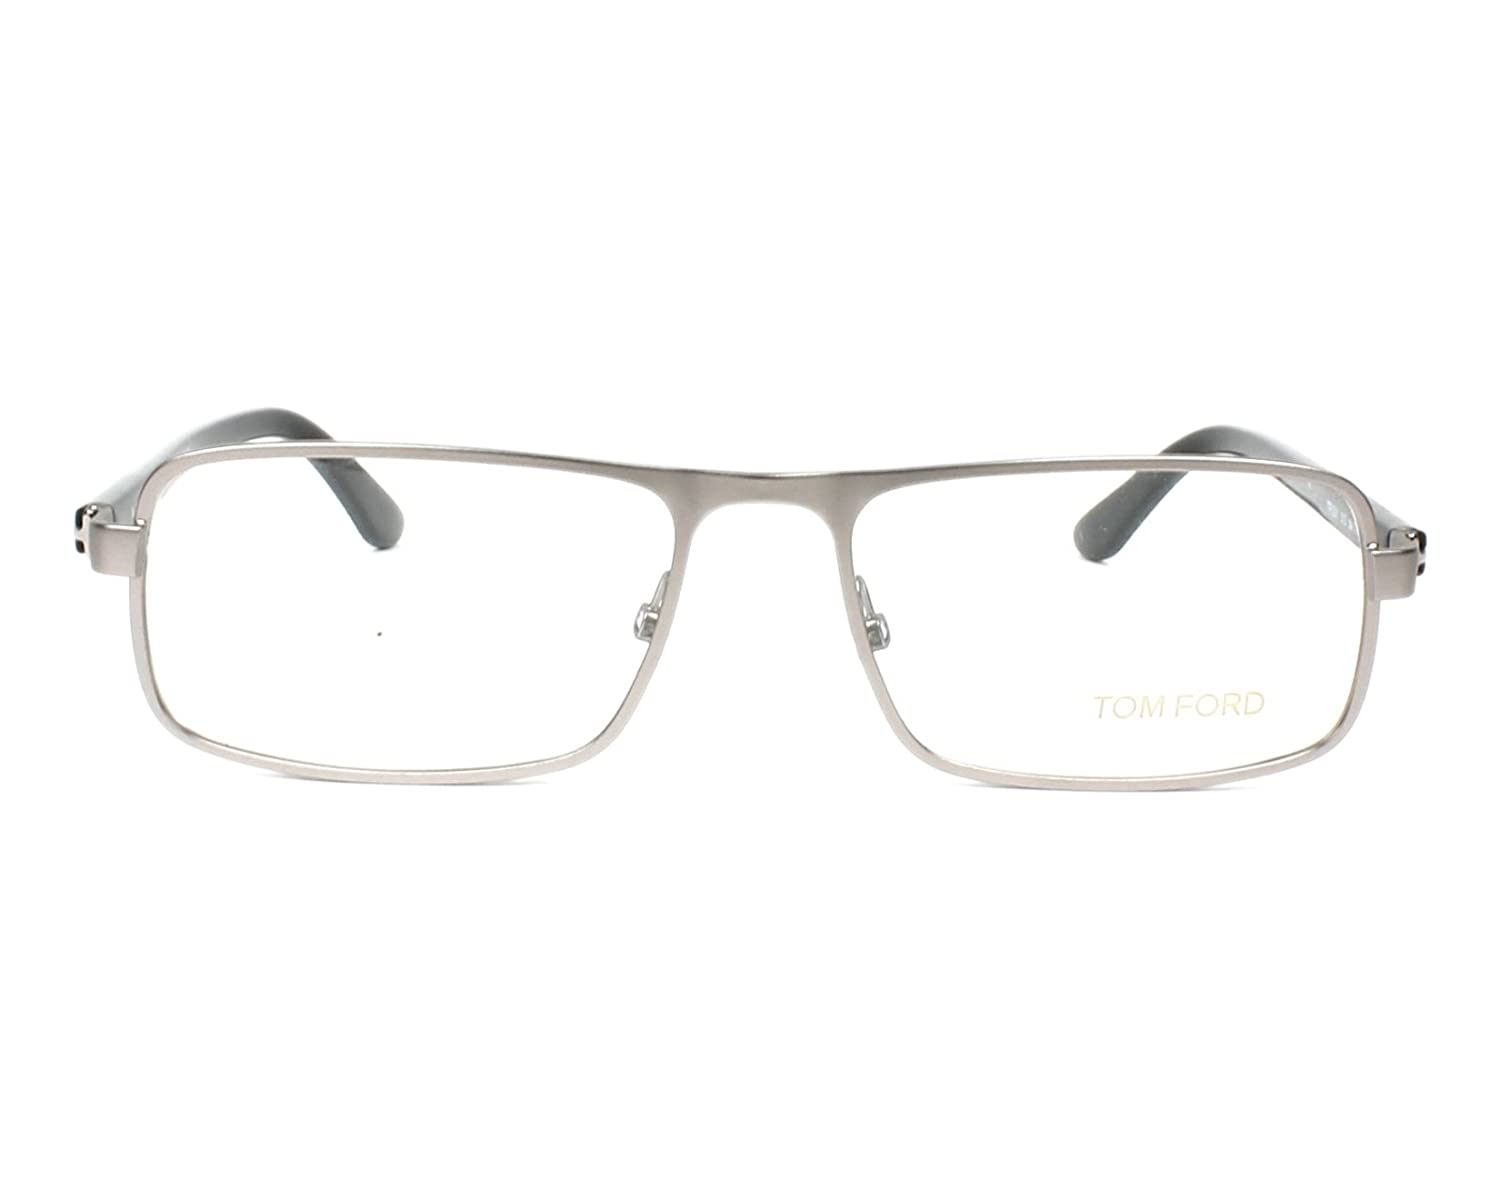 0d273277d60 Amazon.com  Tom Ford Rx Eyeglasses - TF5201 Silver   Frame only with demo  lenses.  Clothing